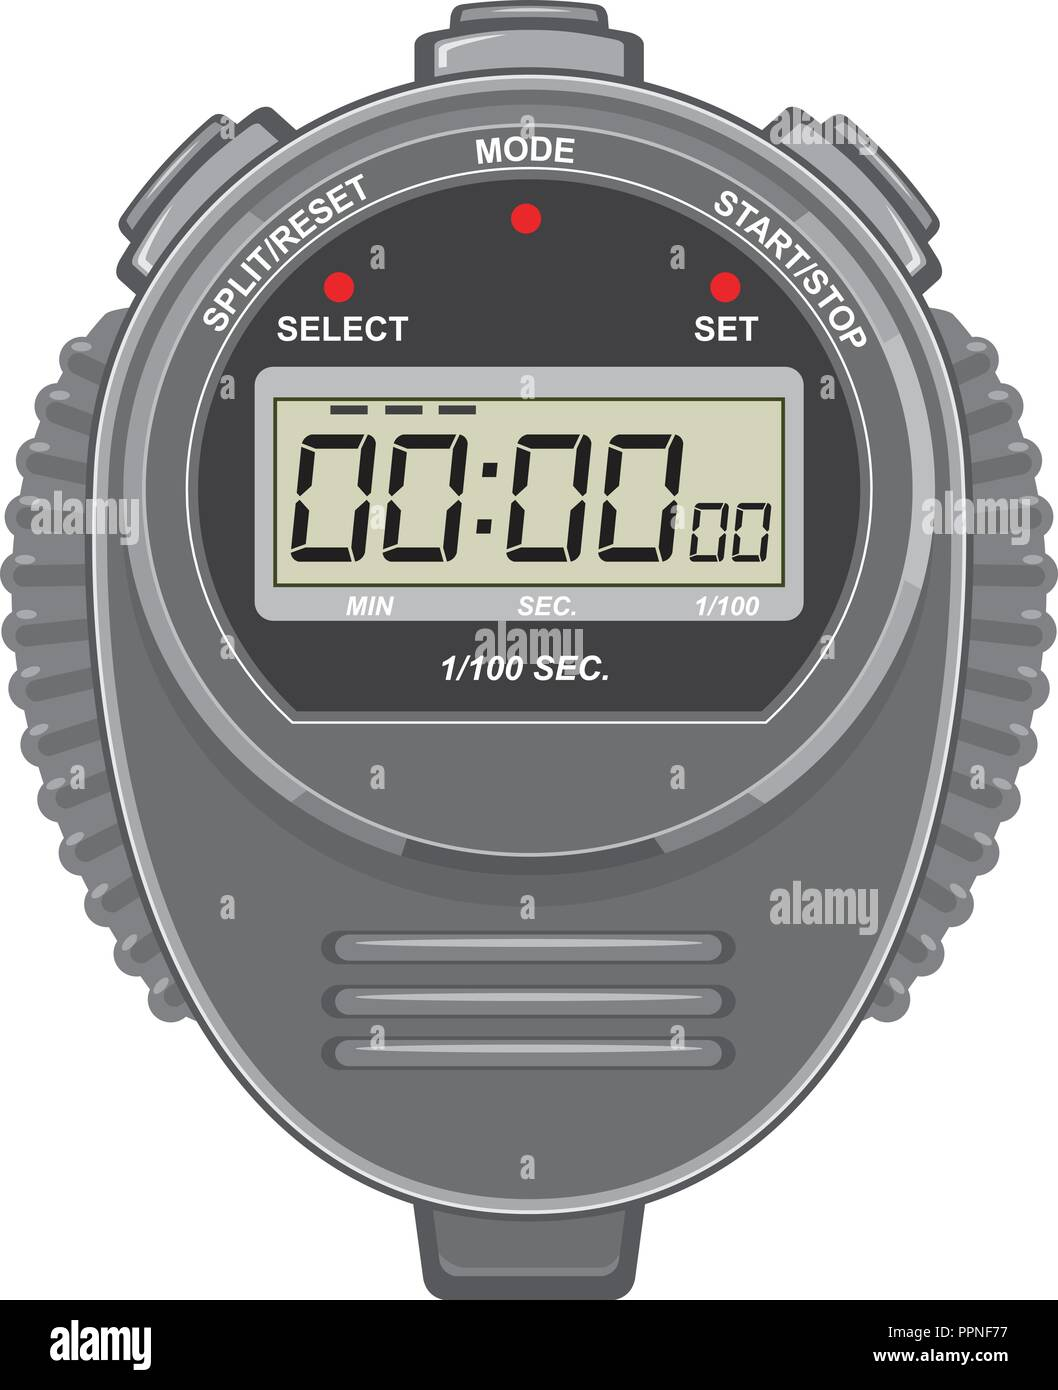 Retro style illustration of a digital stopwatch or timer and